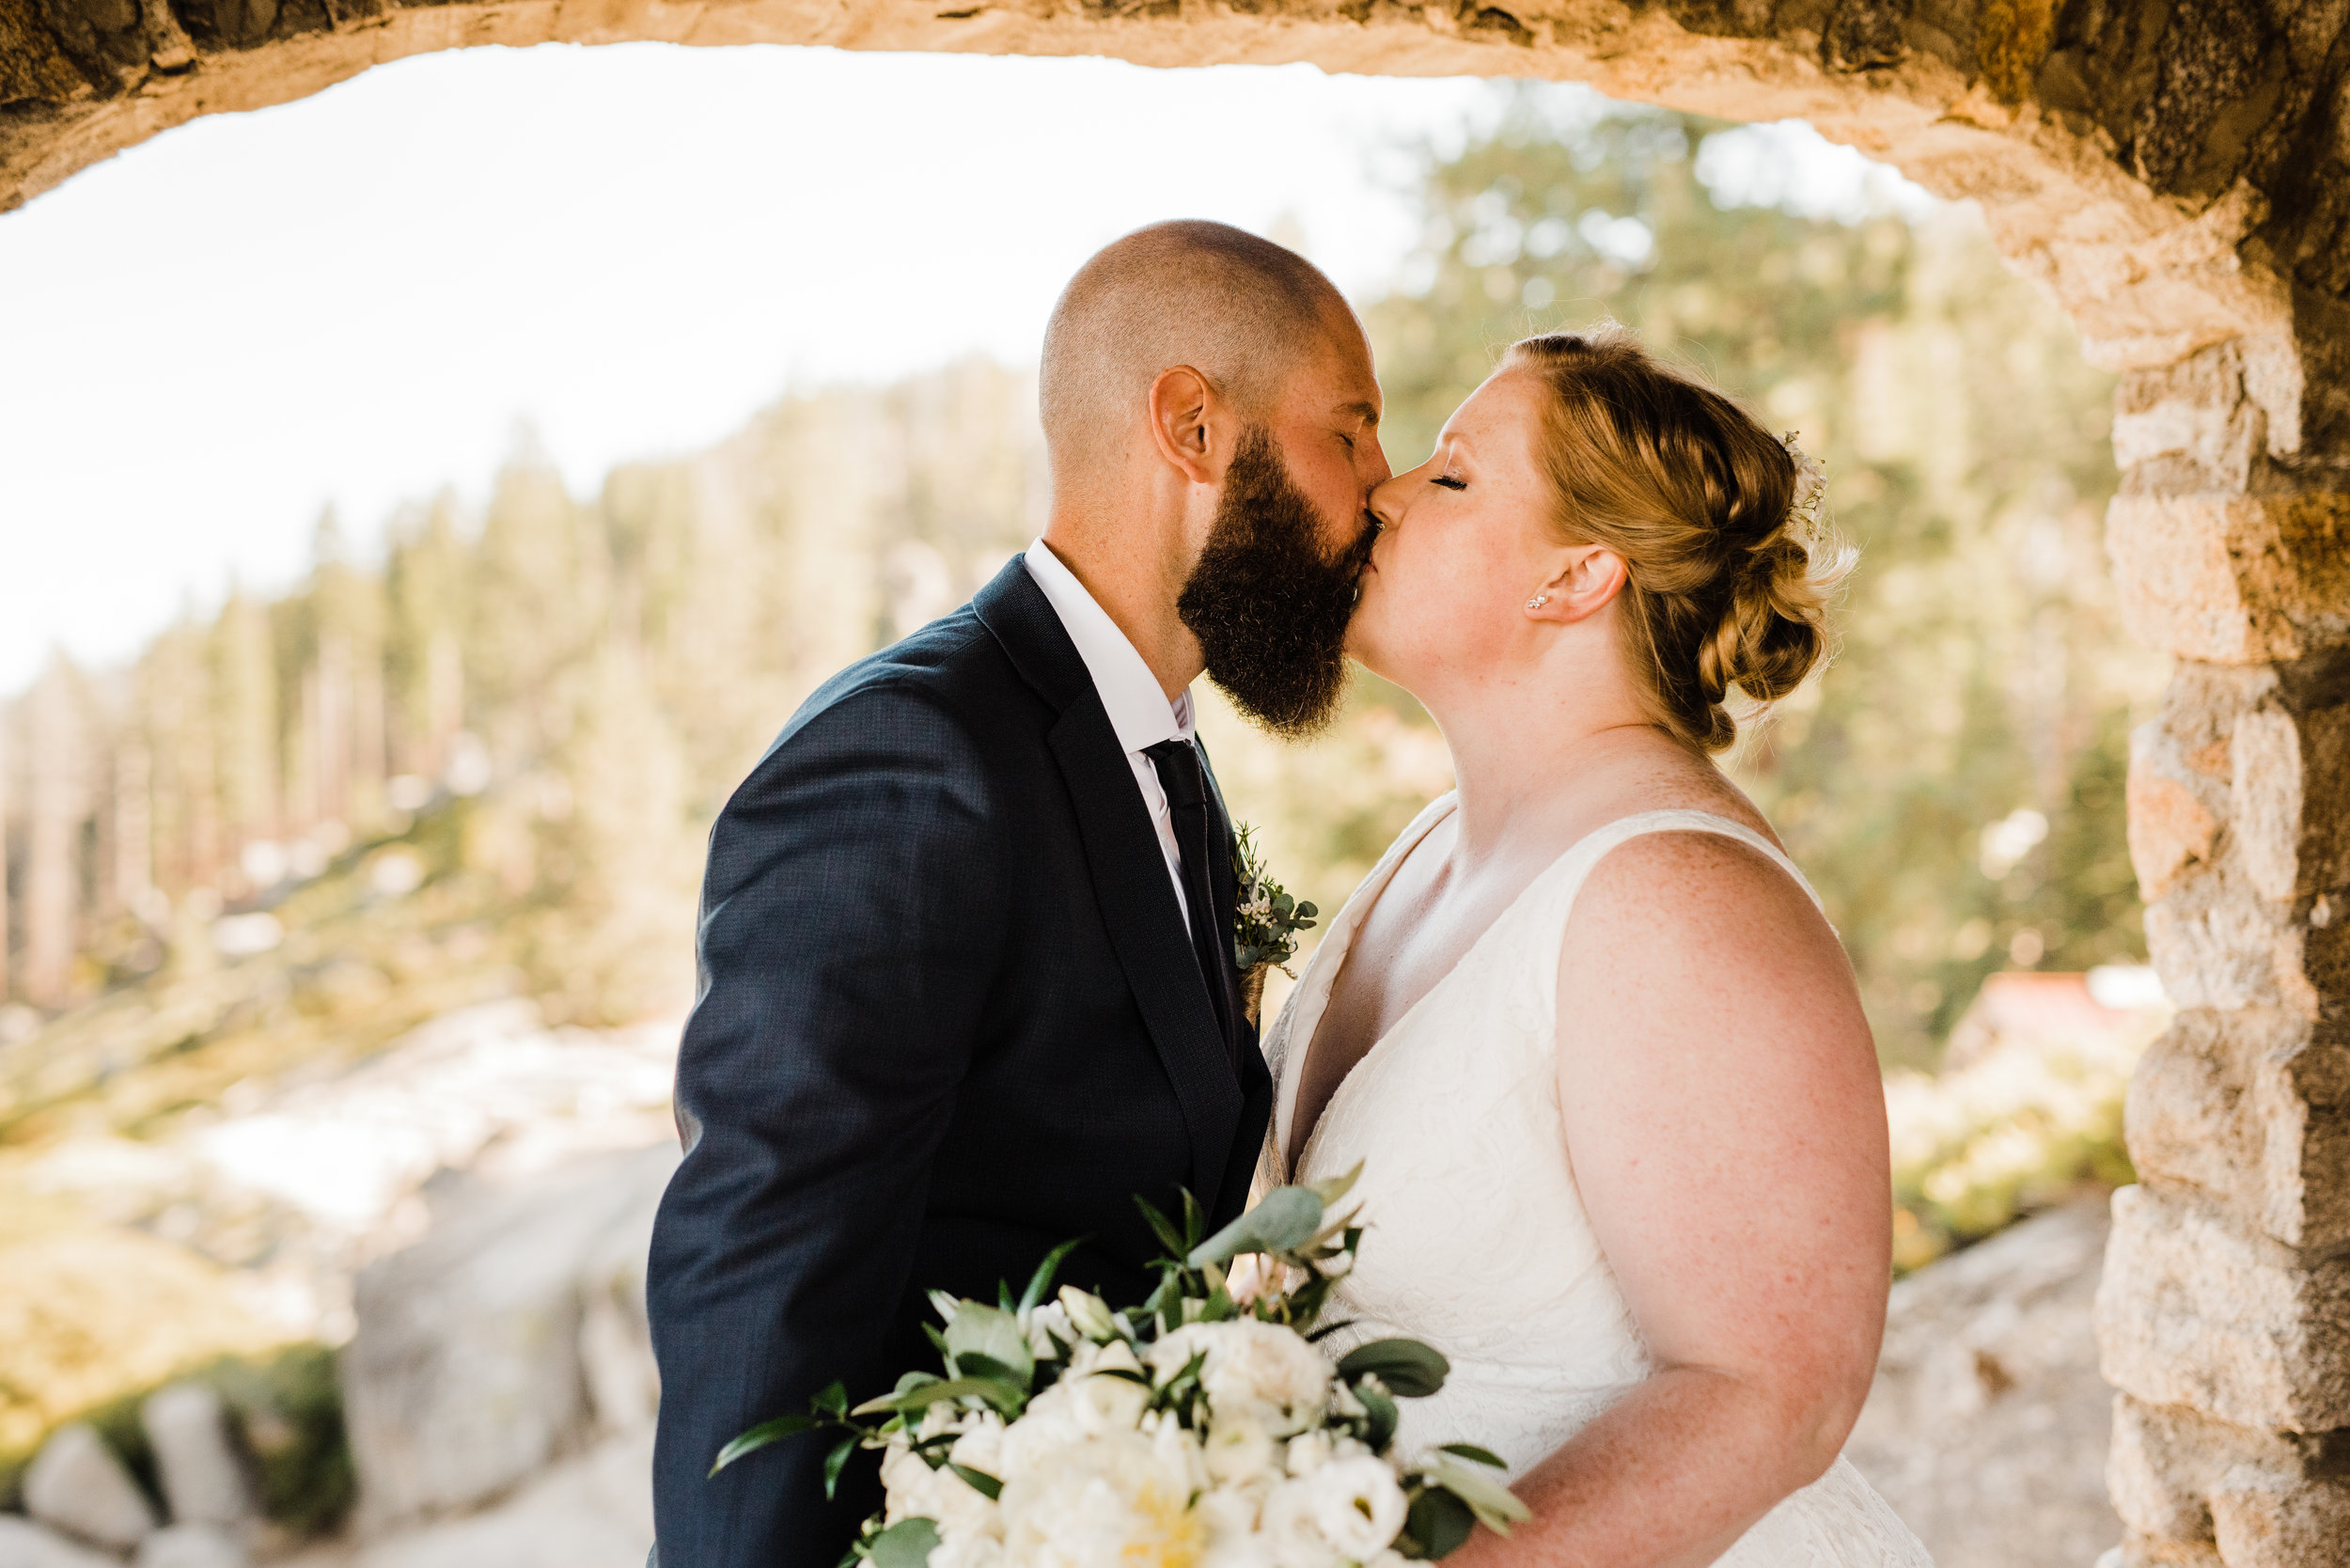 Wedding Portraits in Yosemite's Geology Hut Built in the 1920's